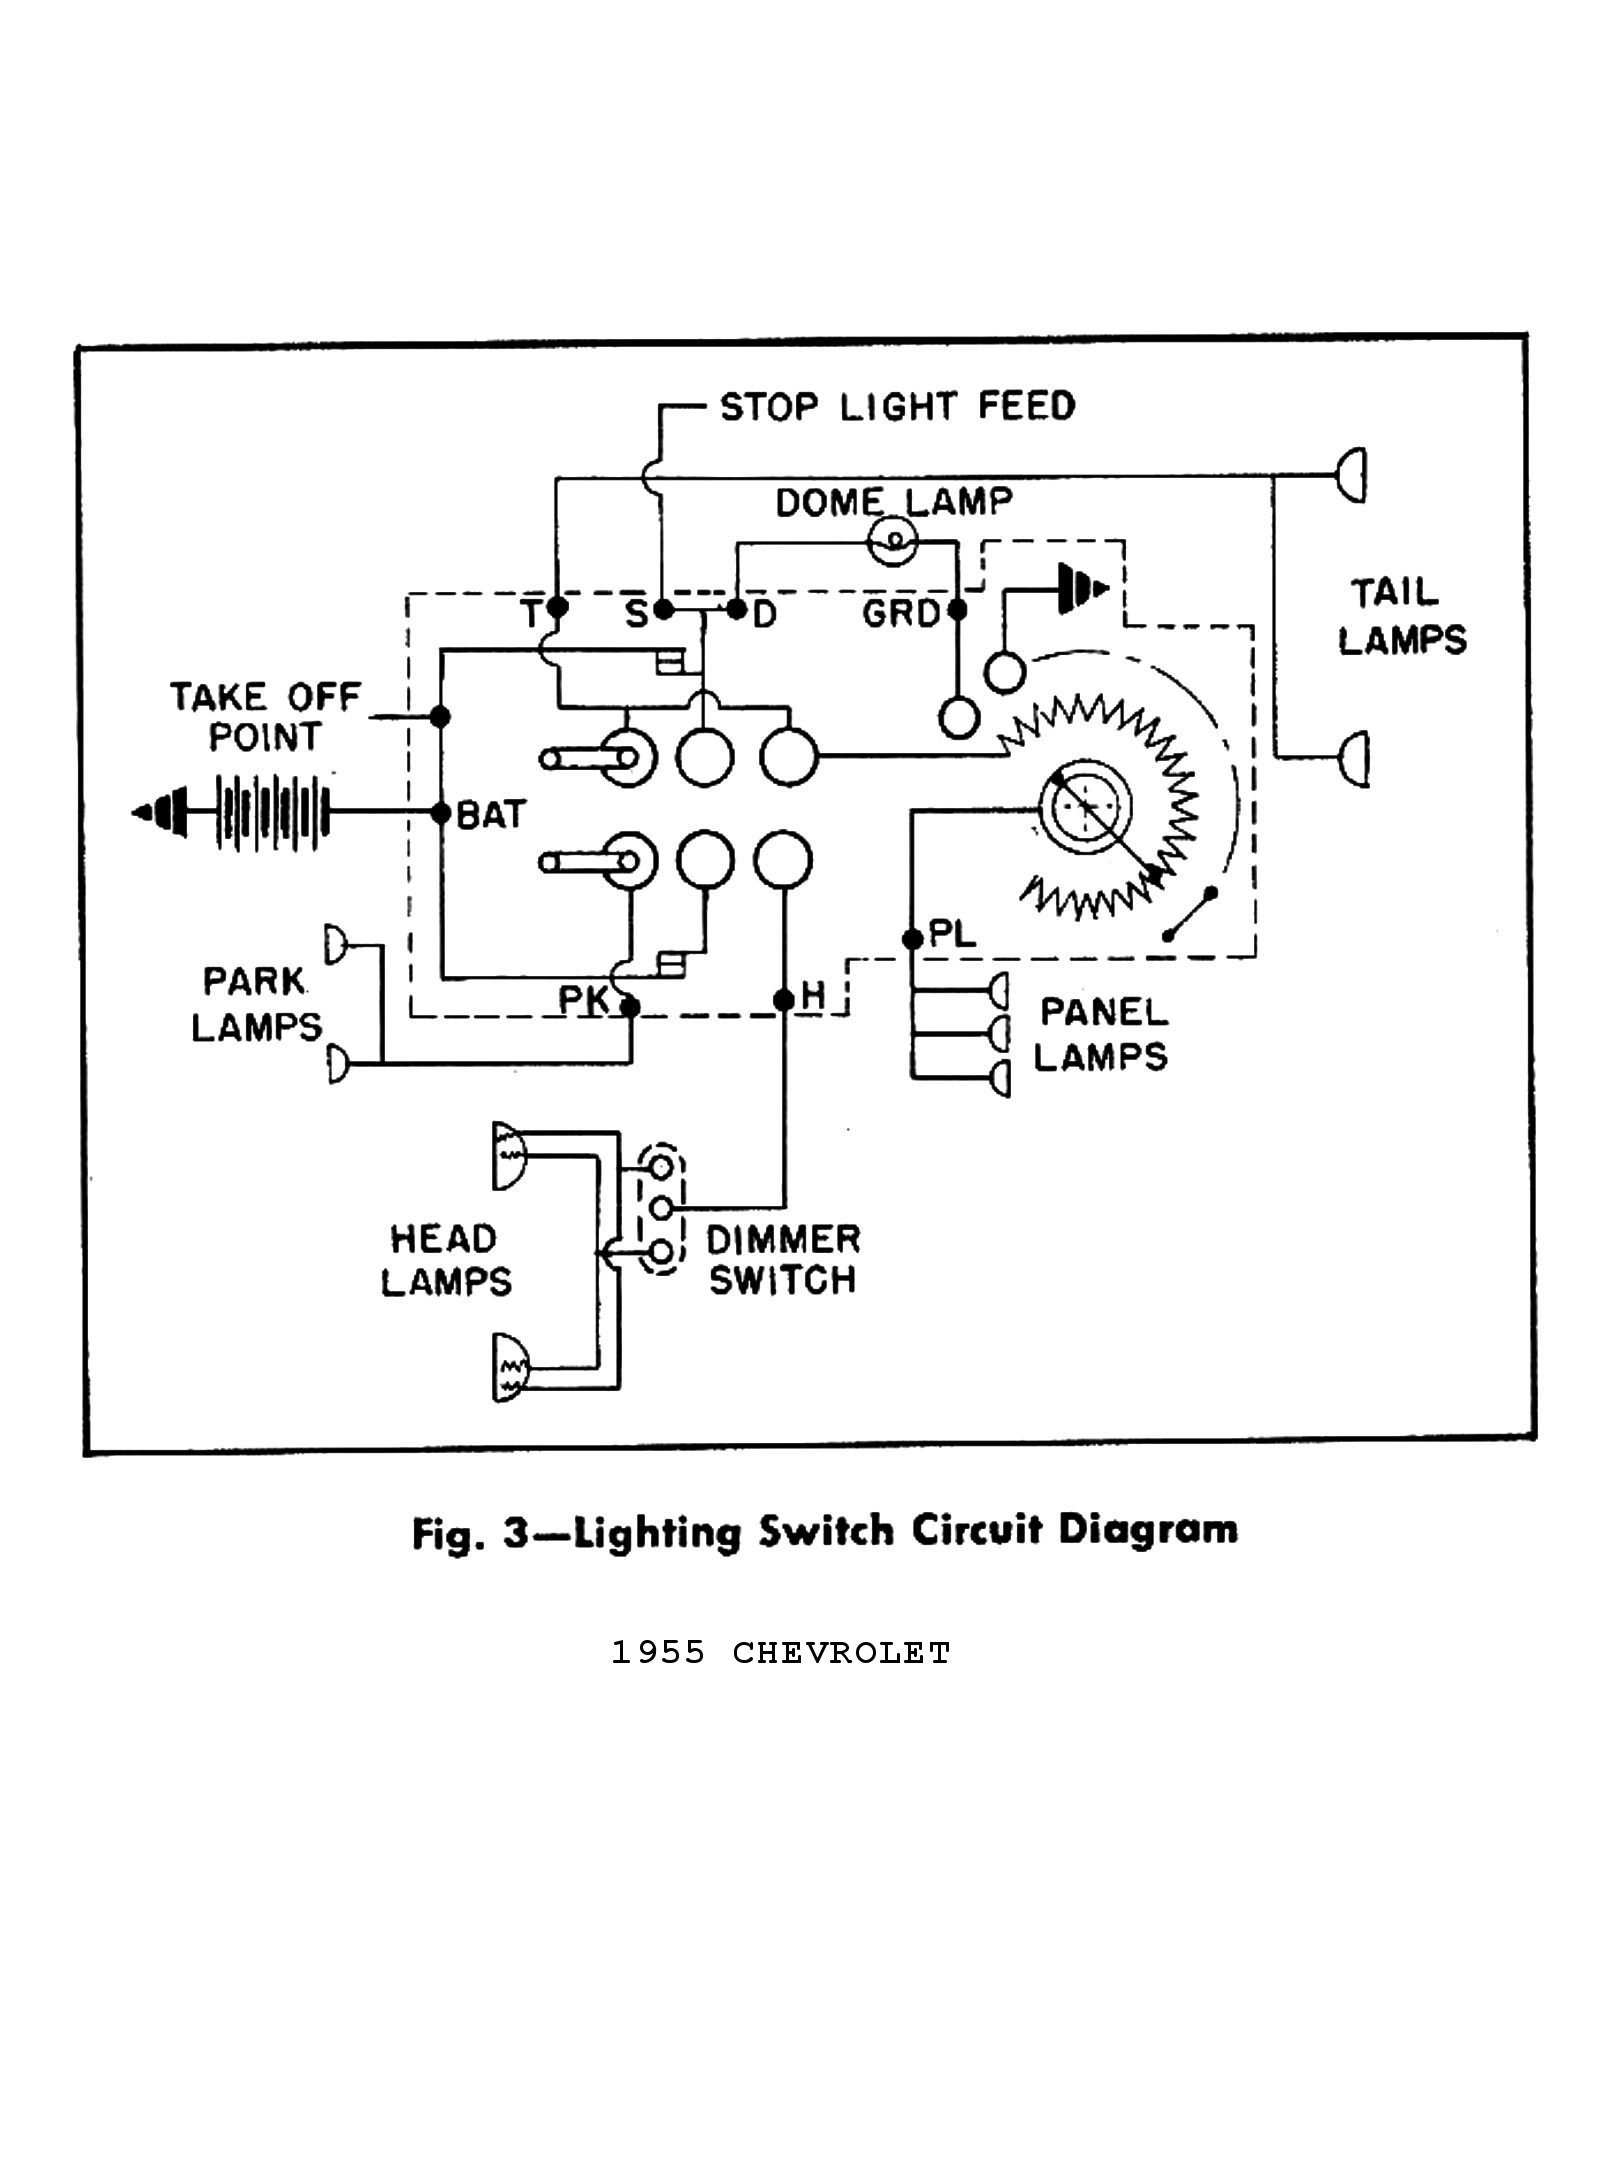 1969 chevy ignition switch wiring diagram repair machine Ignition Switch Wiring Diagram